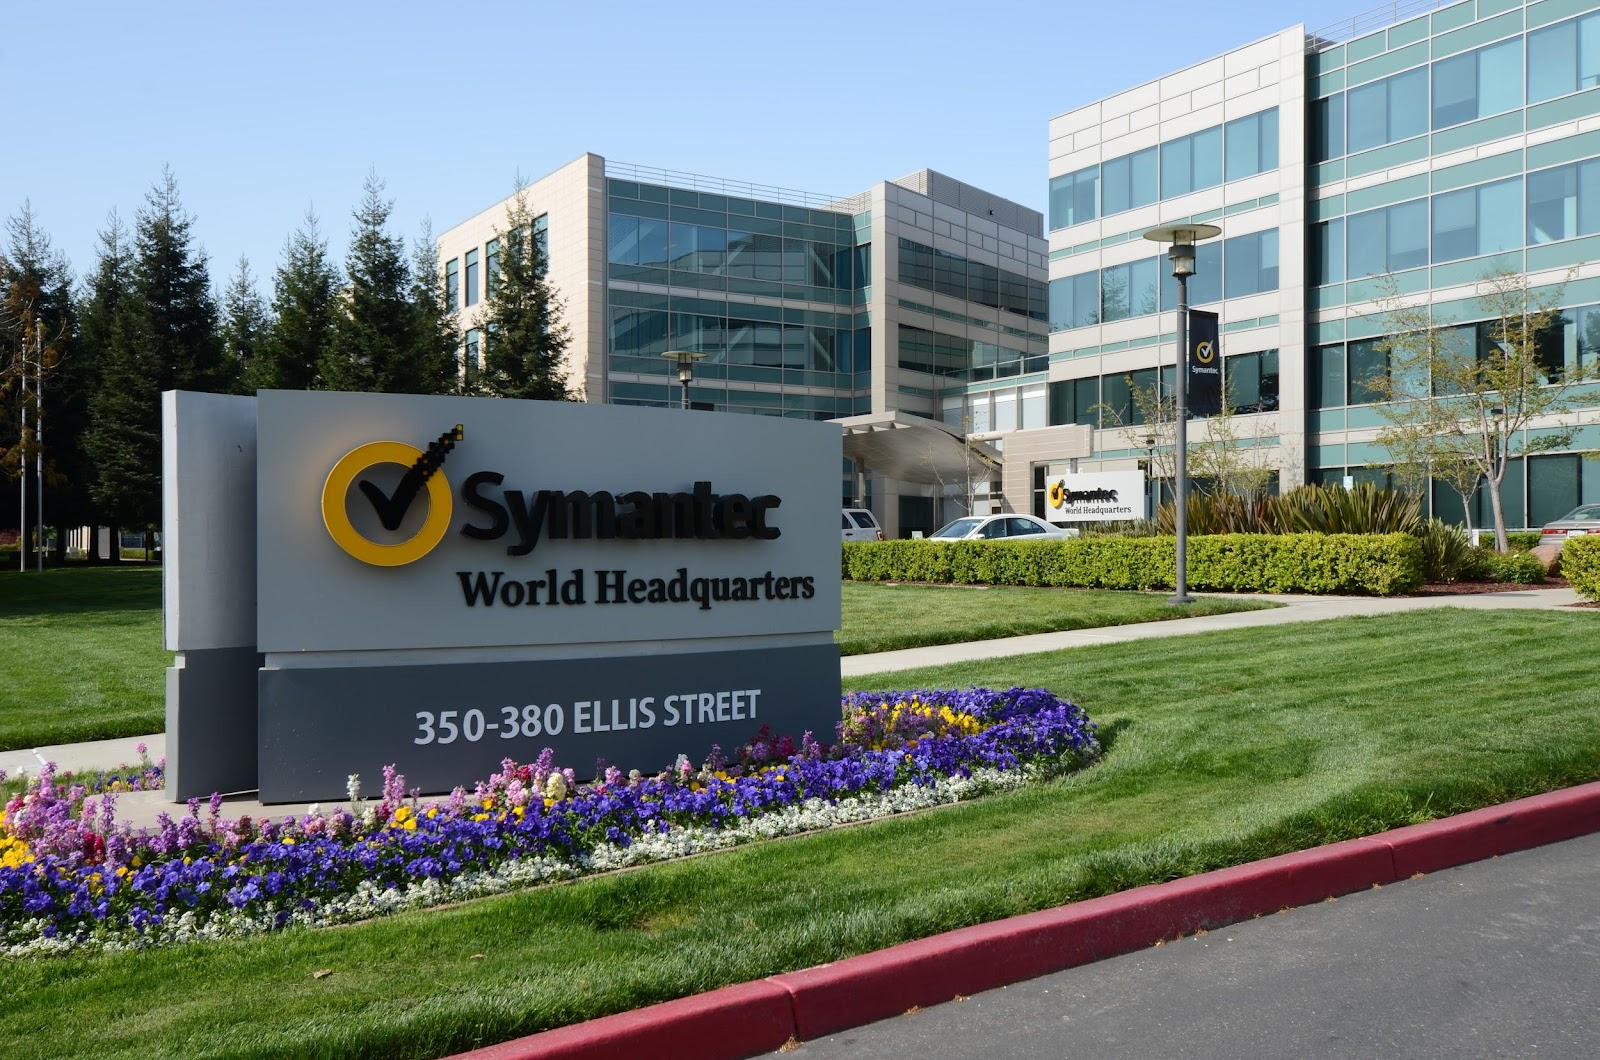 lifelock,symantec,business